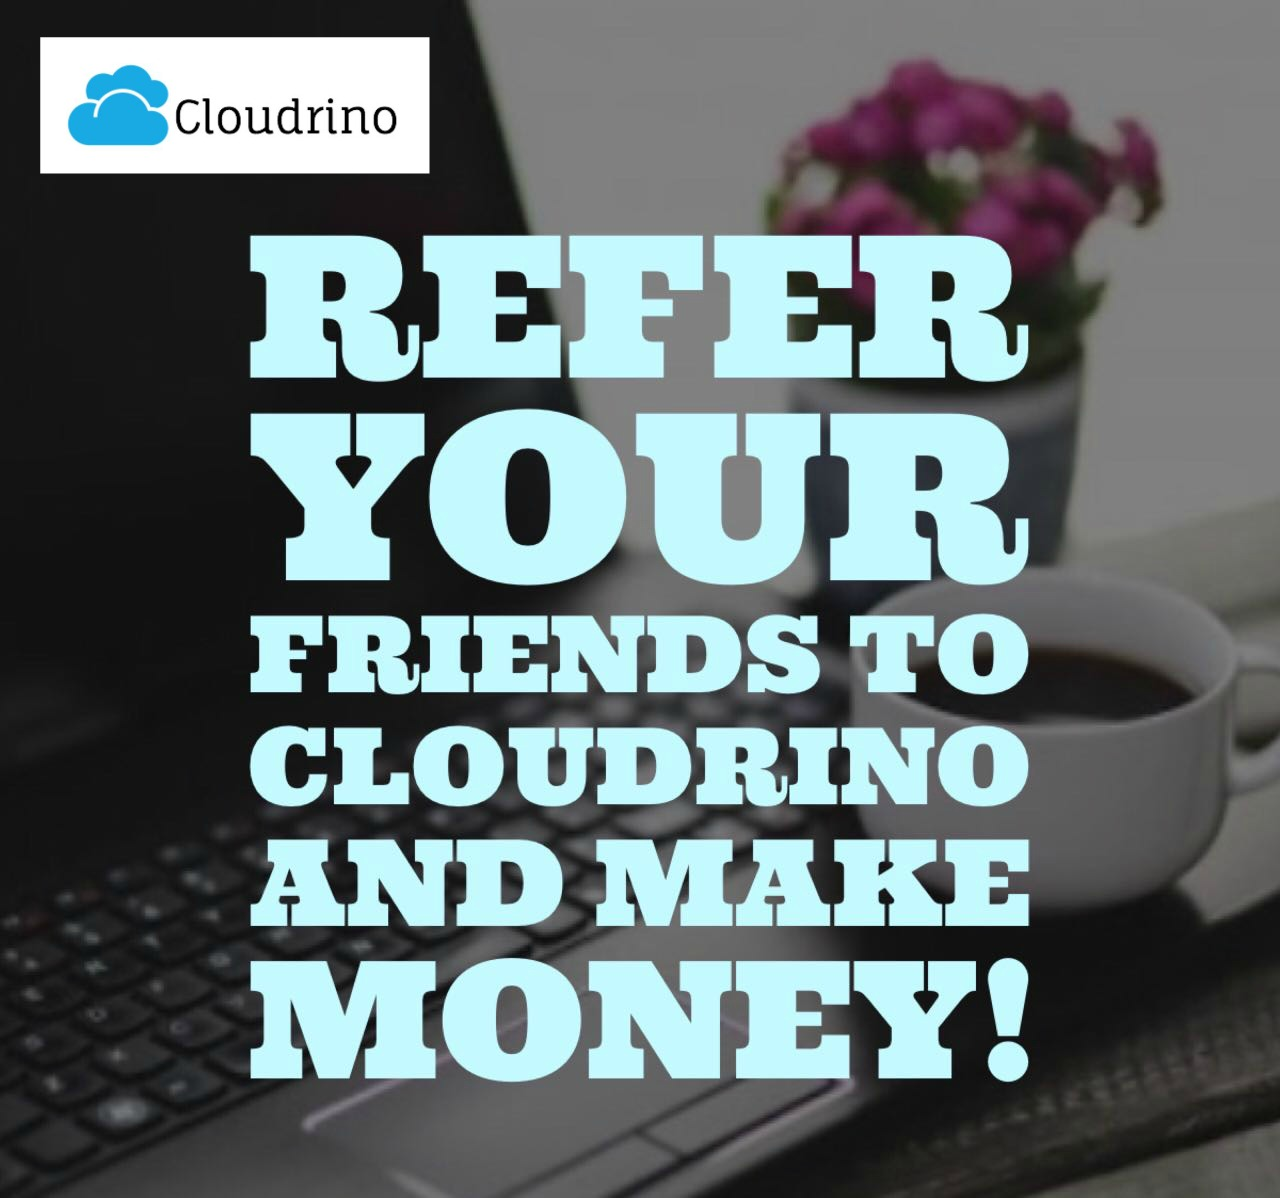 provide and take care of your cloud hosting.